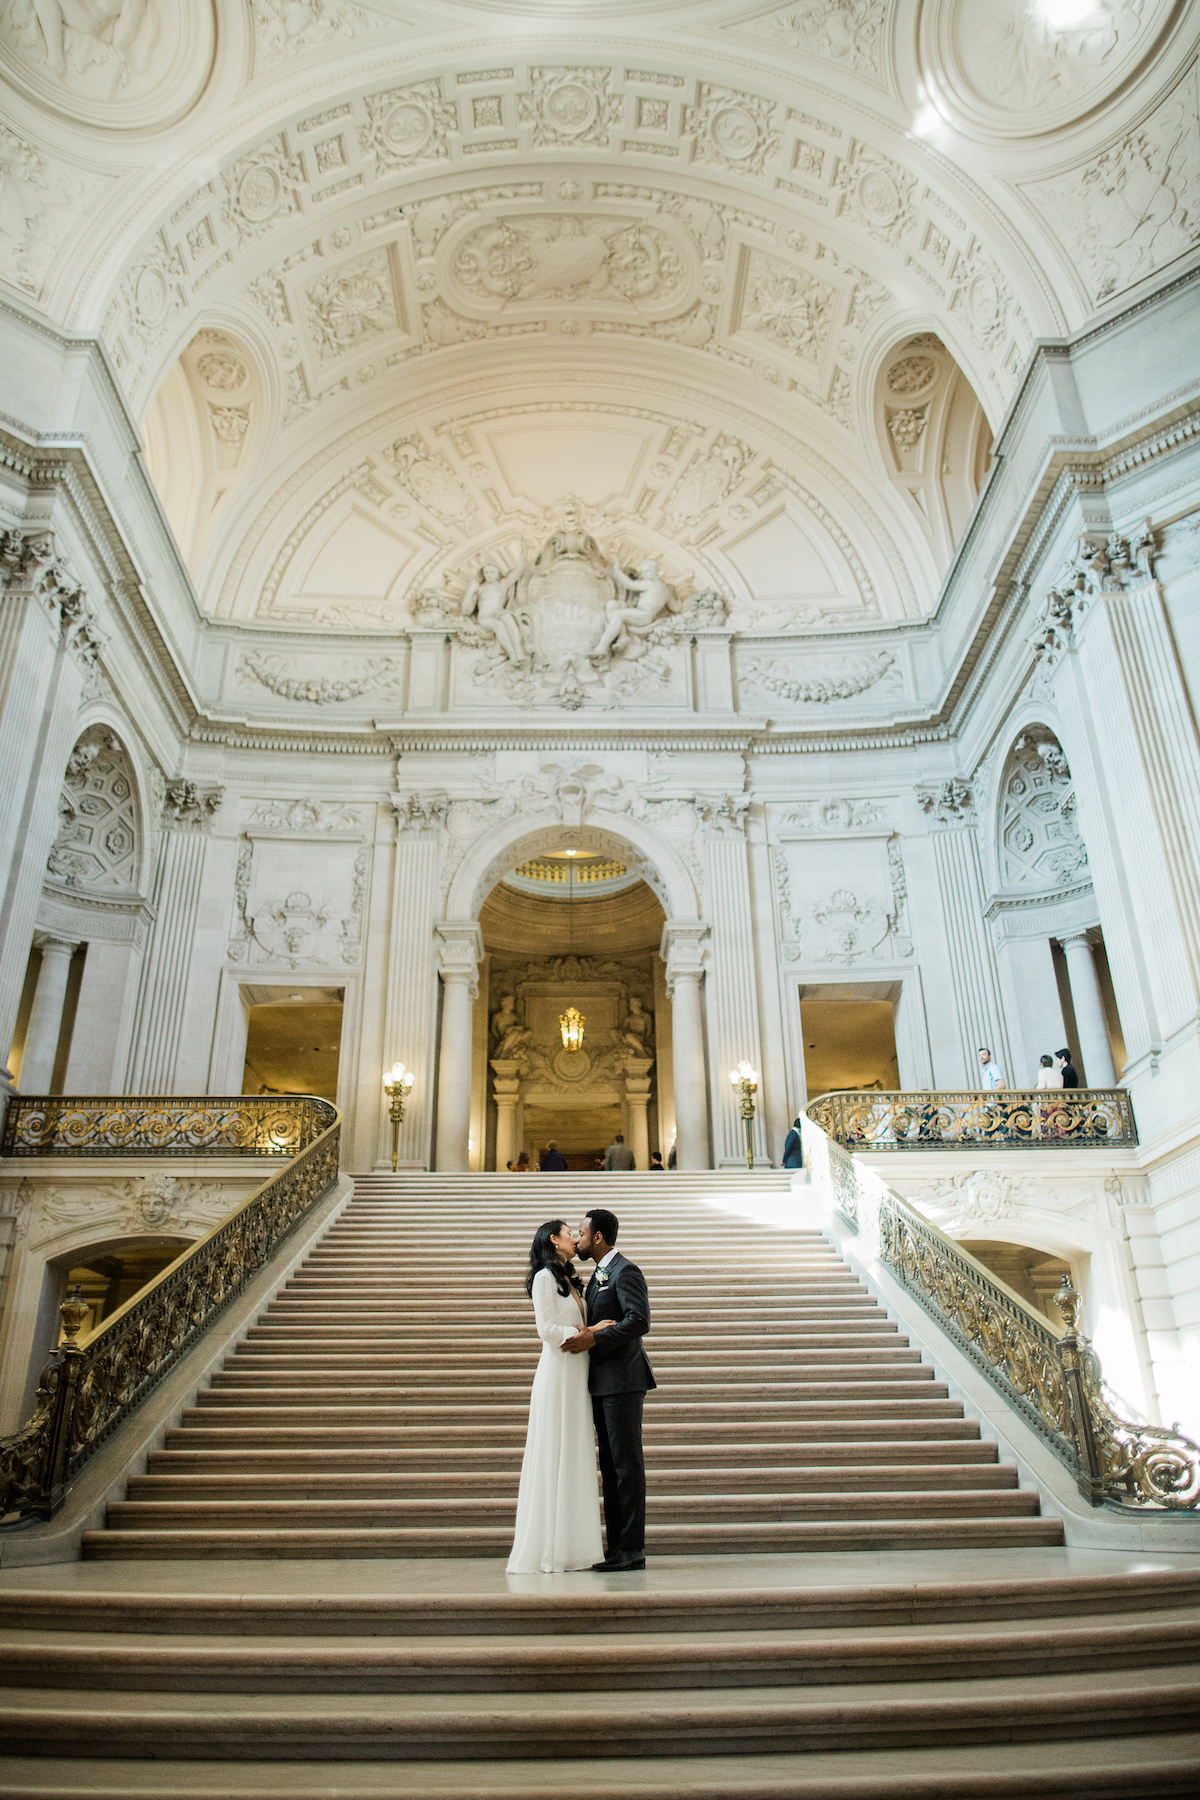 A wedding couple kiss while standing on steps in City Hall